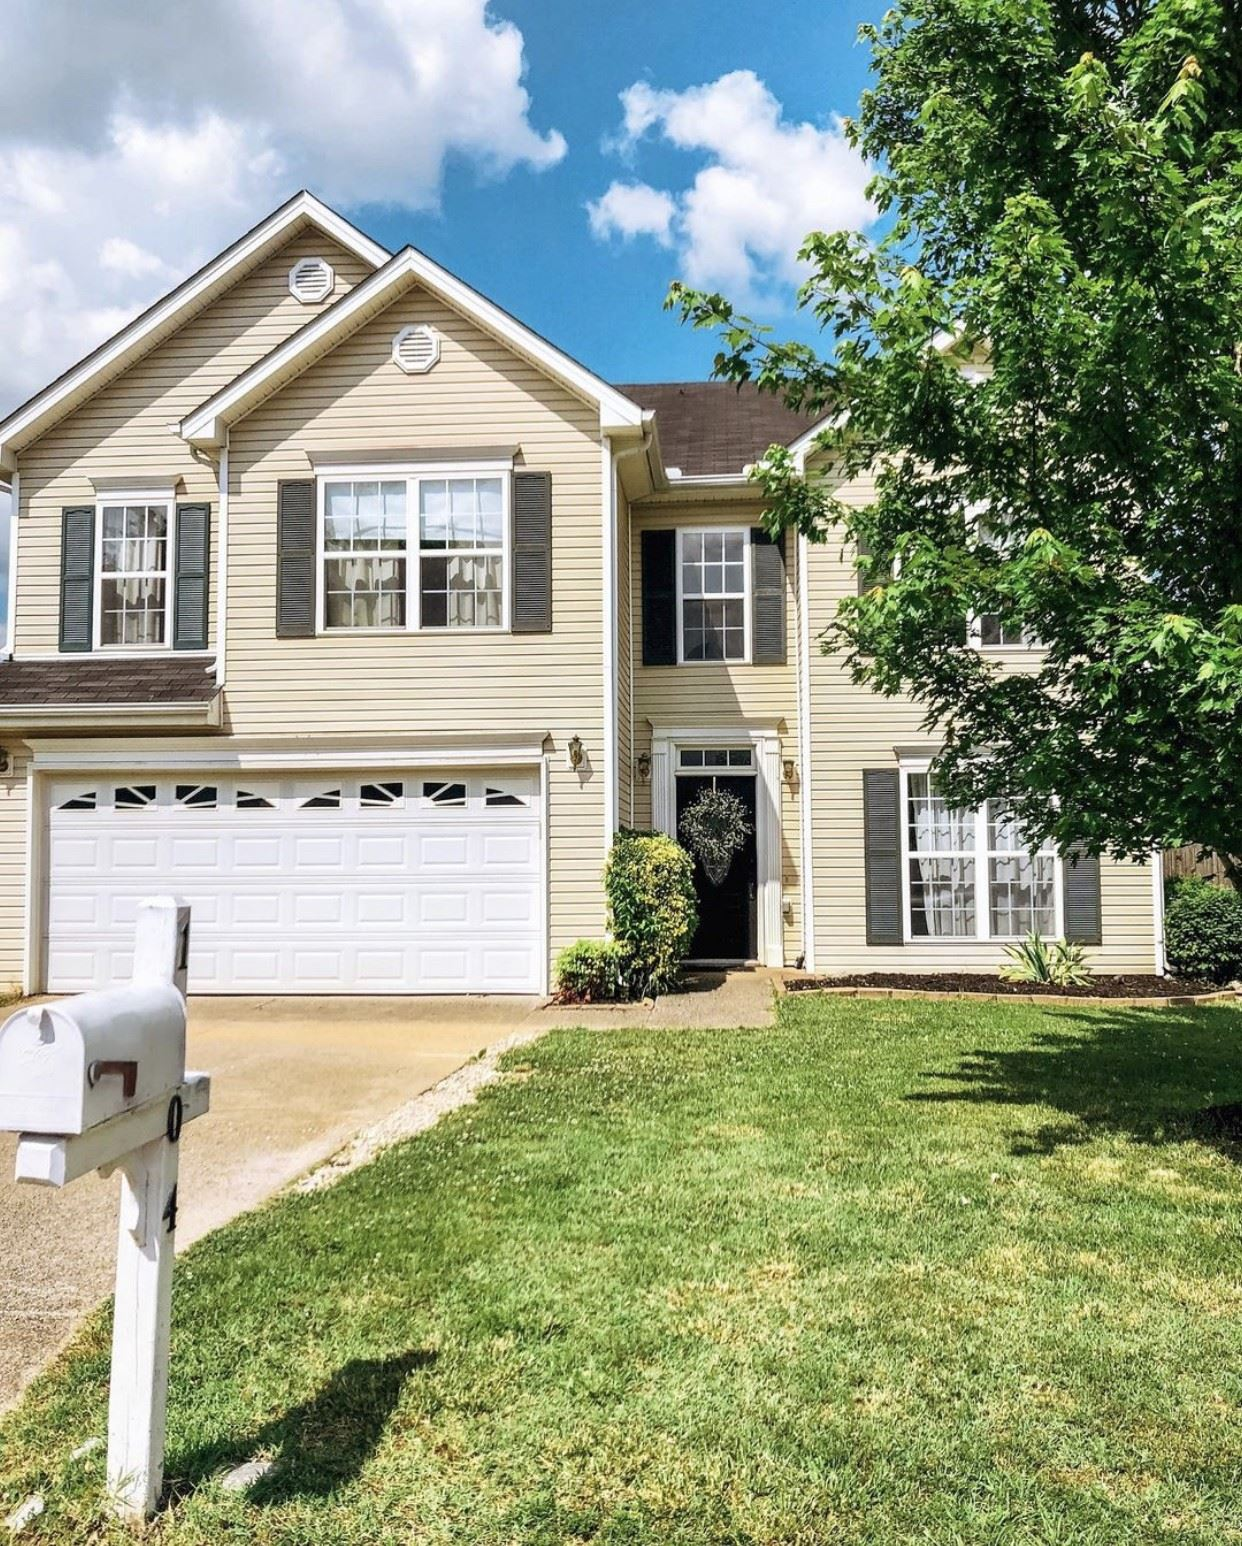 Photo of 1604 Harrison Way, Spring Hill, TN 37174 (MLS # 2232380)